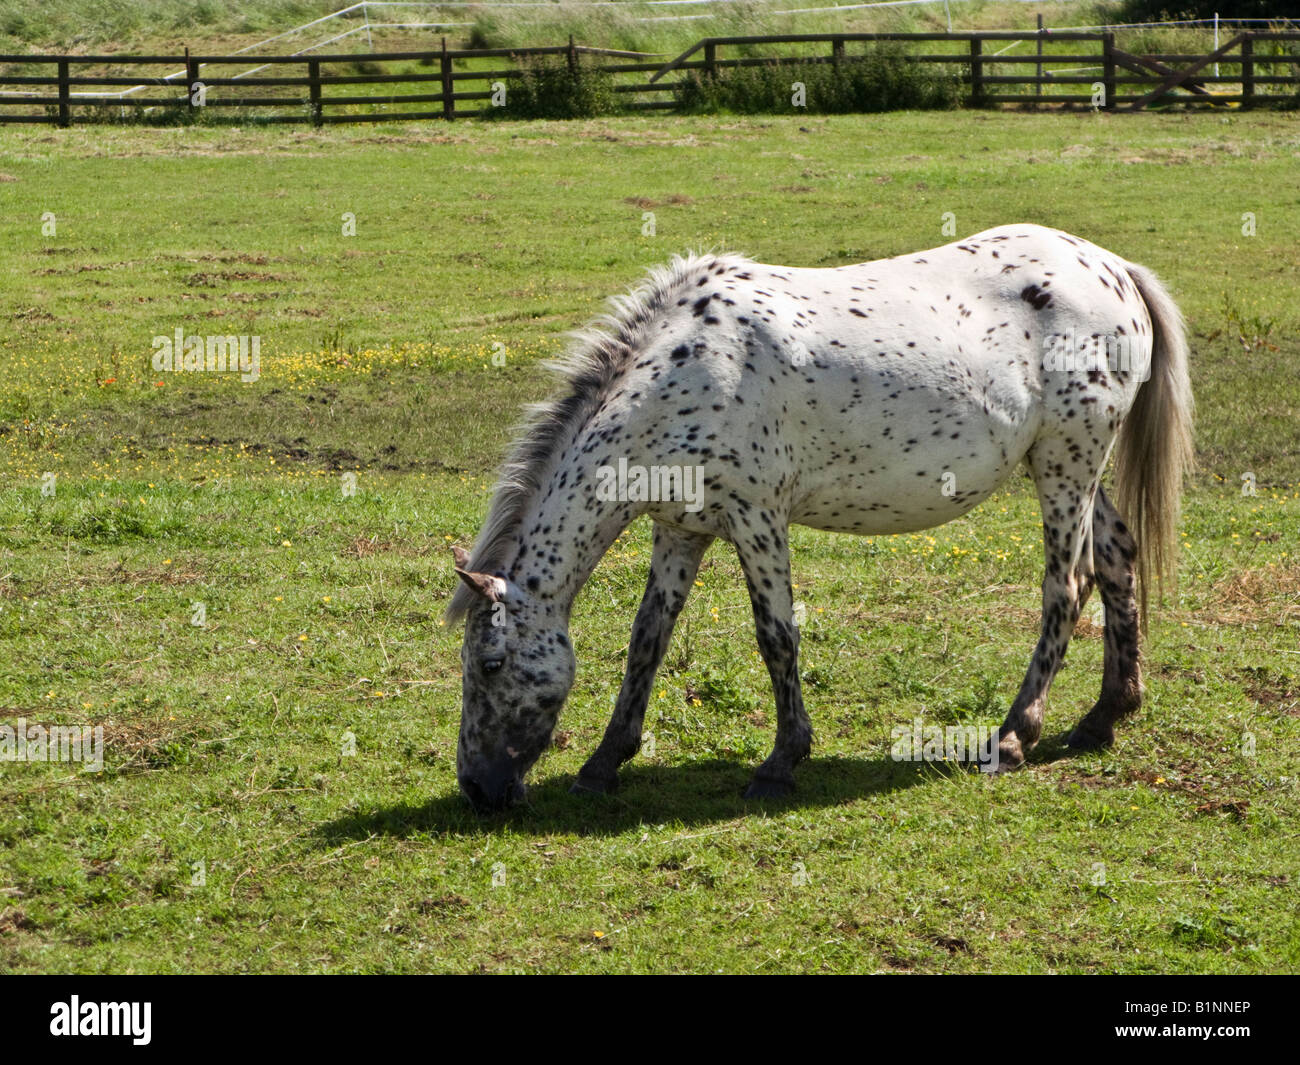 White Leopard Spotted Appaloosa Horse Breed Grazing In A Field Stock Photo Alamy